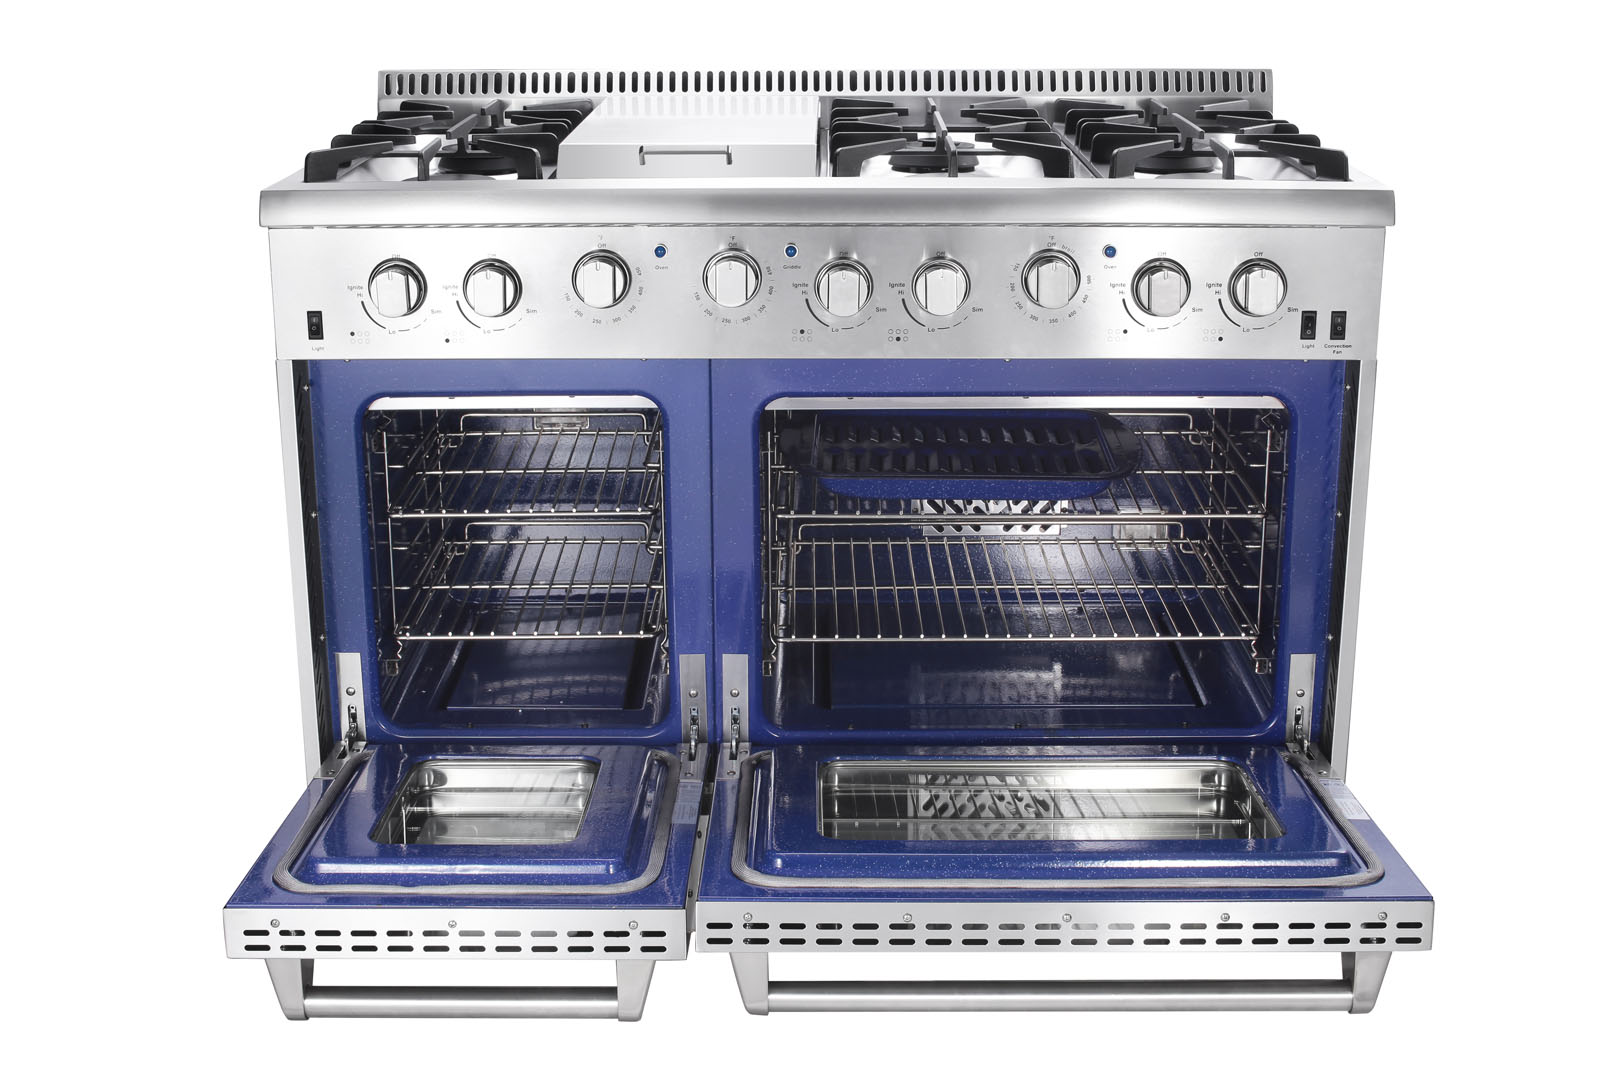 propane kitchen stove round rugs 48 in 6 7 cu ft double oven gas range with convection